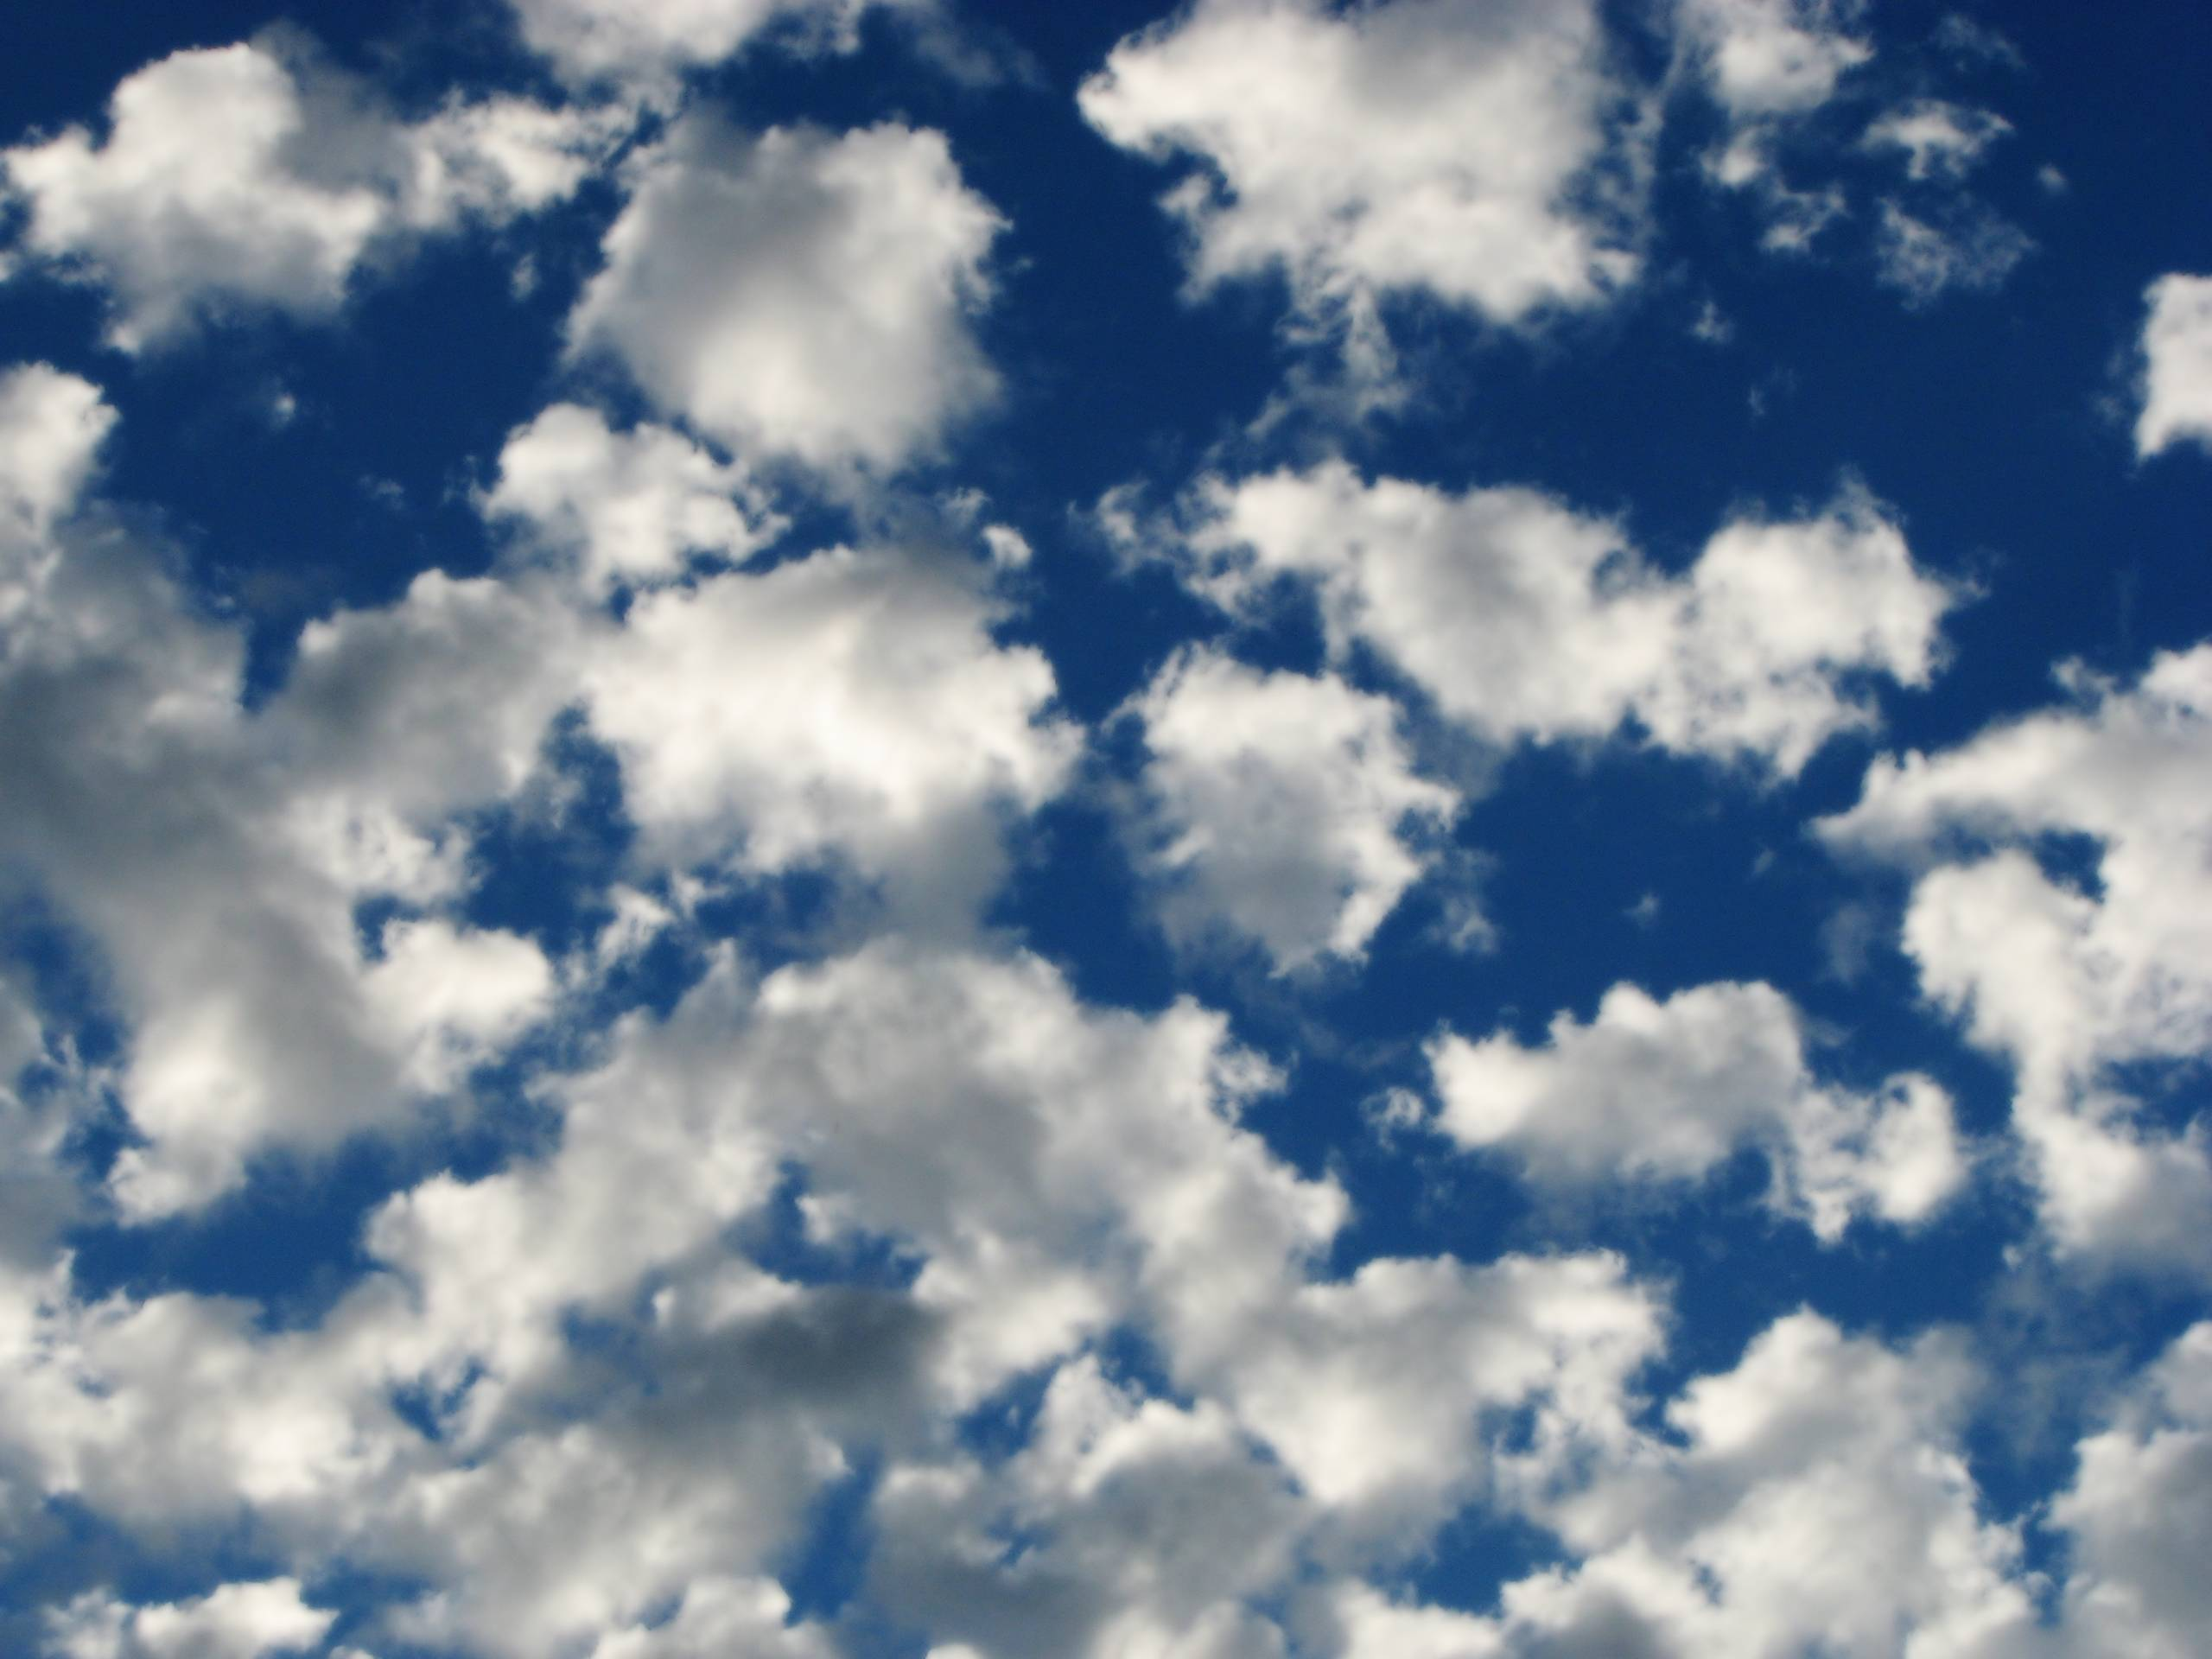 Clouds Wallpapers | HD Wallpapers Base